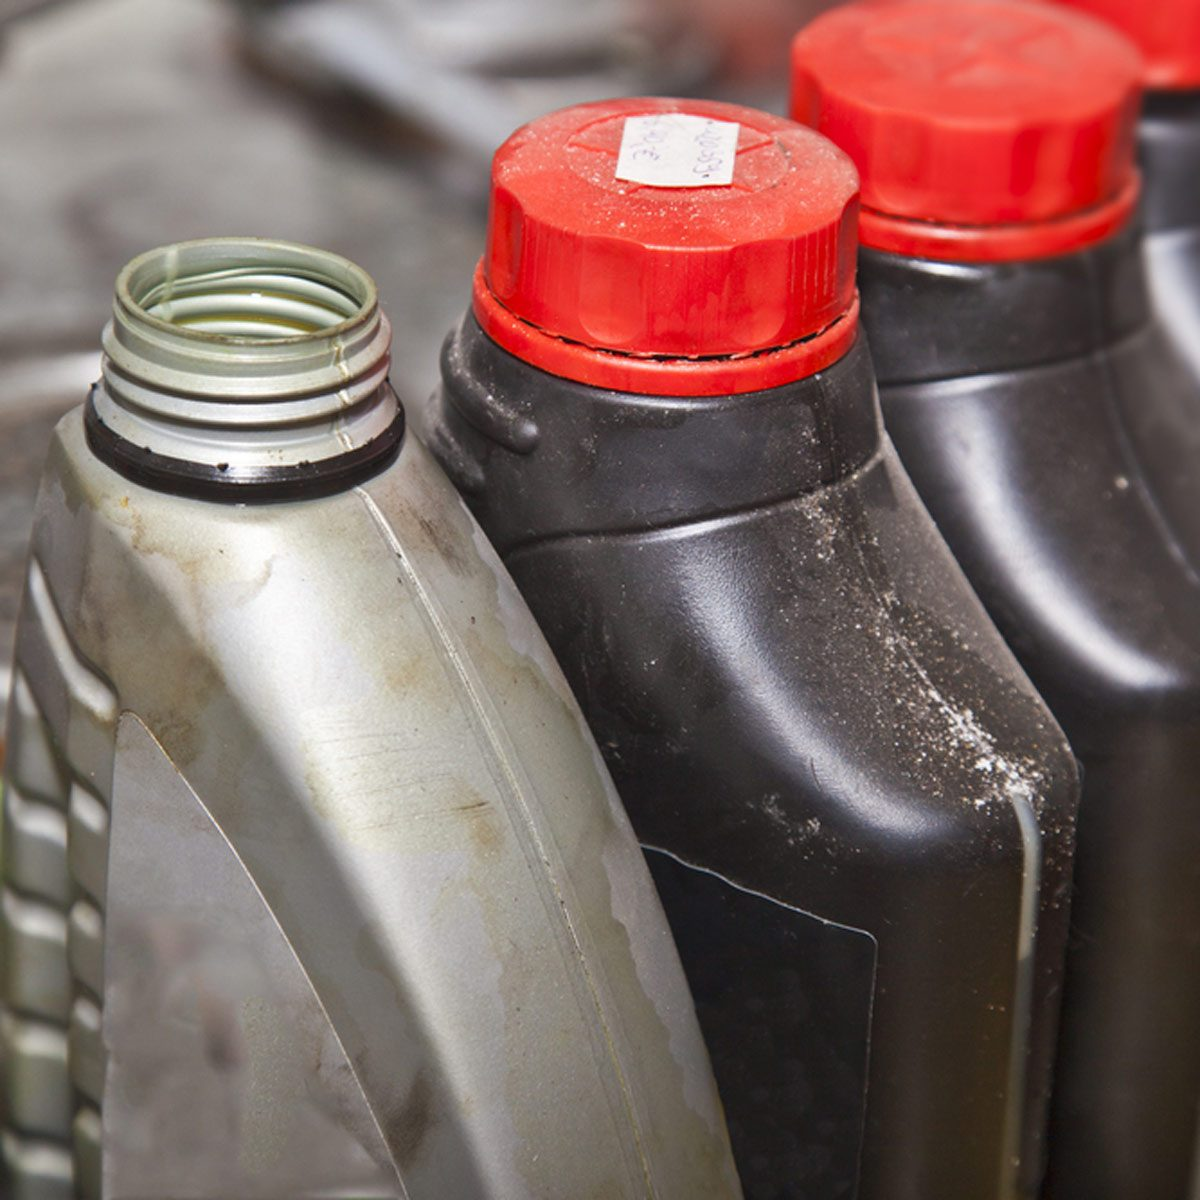 12 hazardous household items and how to get rid of them for Motor oil disposal near me